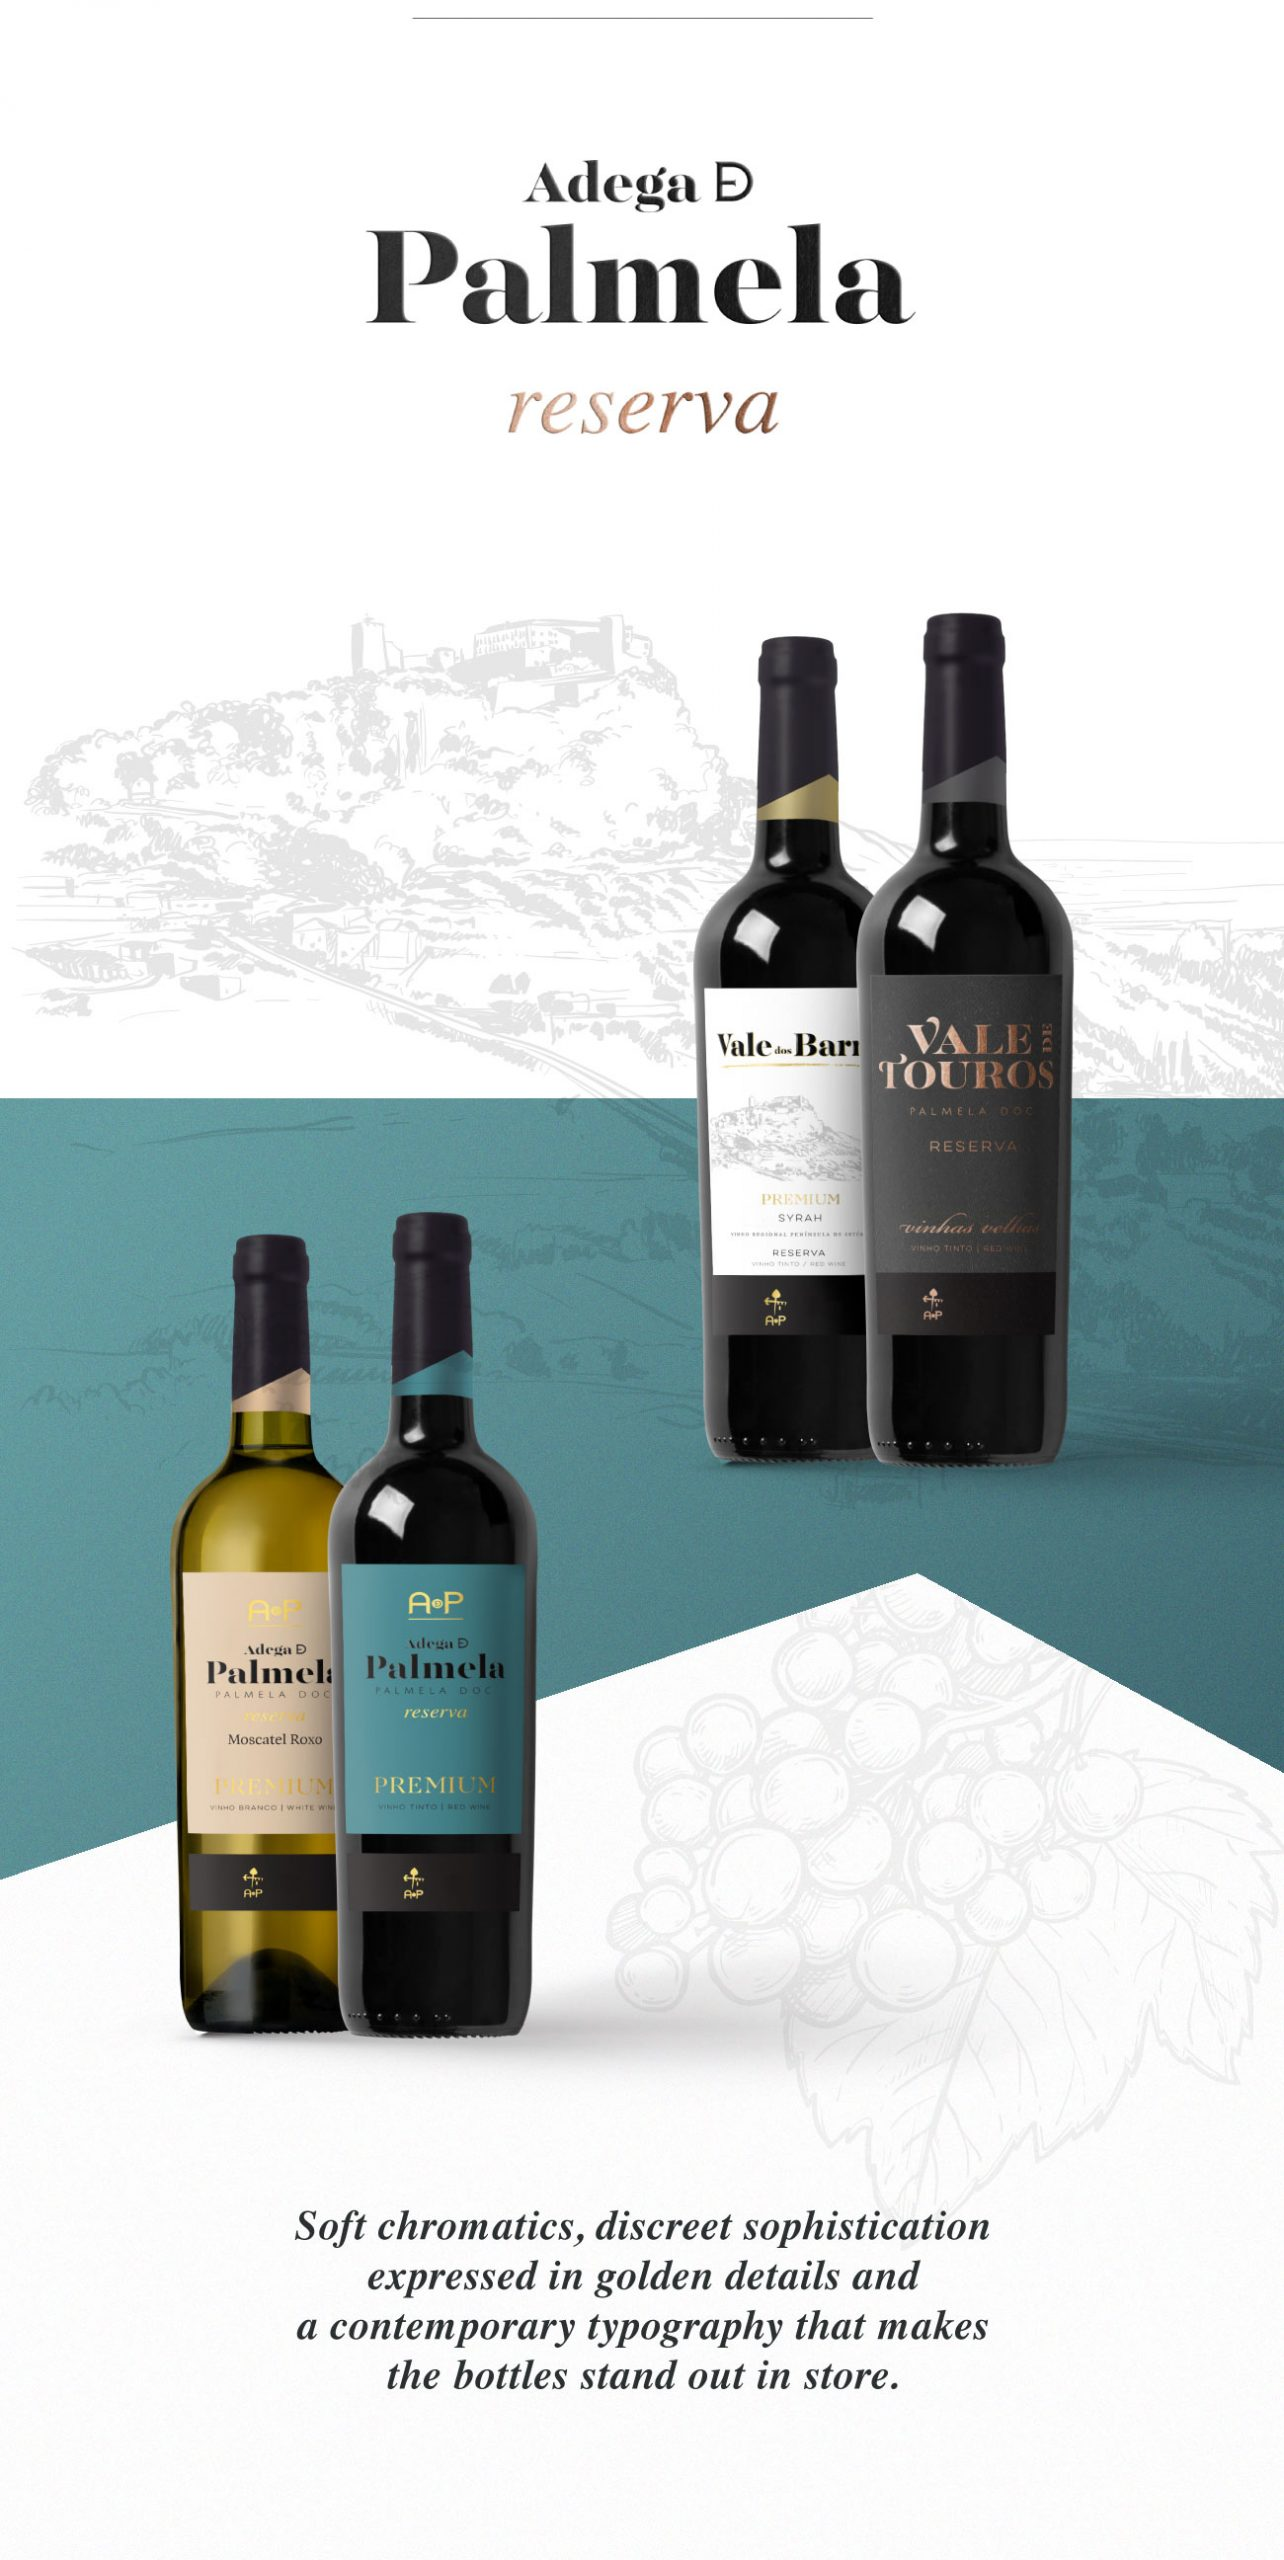 AdP_vinhos_premium_website_case_body_02